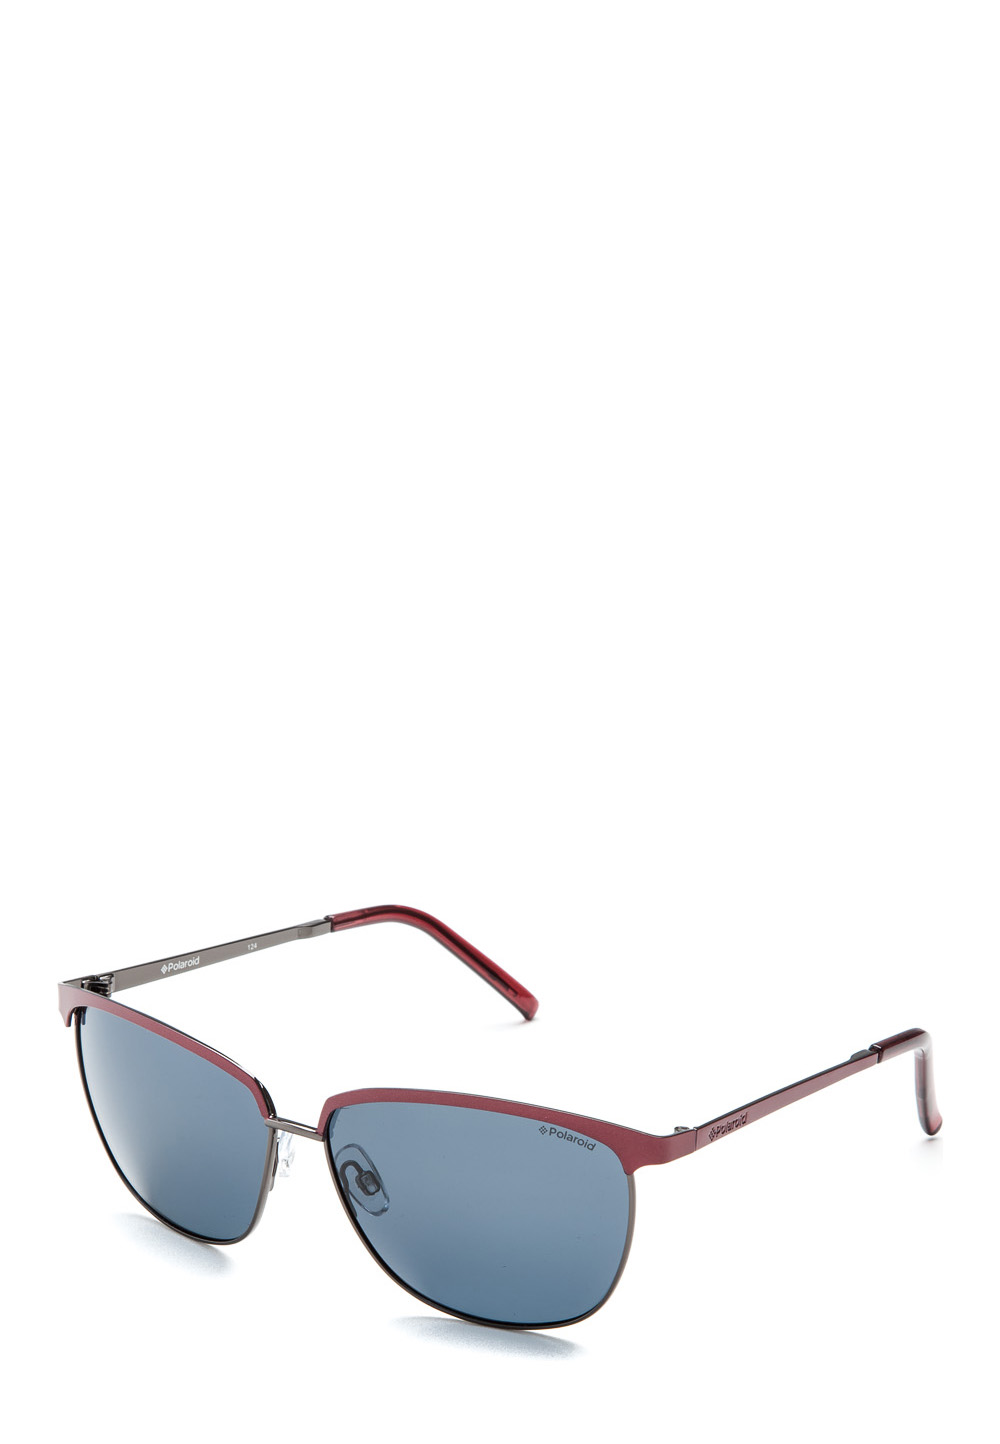 Sonnenbrille P4015, polarized, UV 400 rot